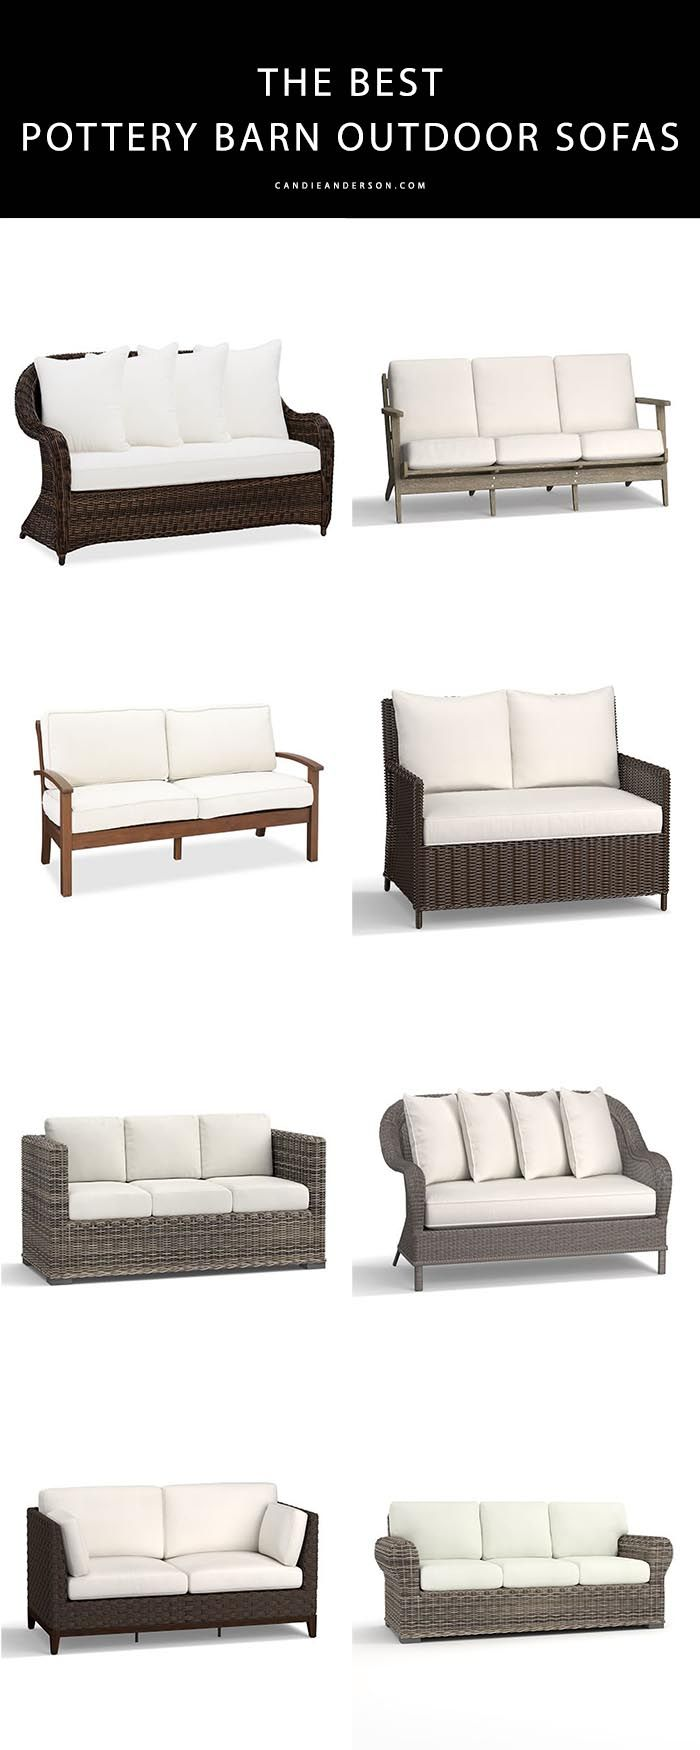 11 Best Pottery Barn Outdoor Sofas On Sale Candie Anderson Pottery Barn Outdoor Outdoor Sofa Outdoor Furniture Decor